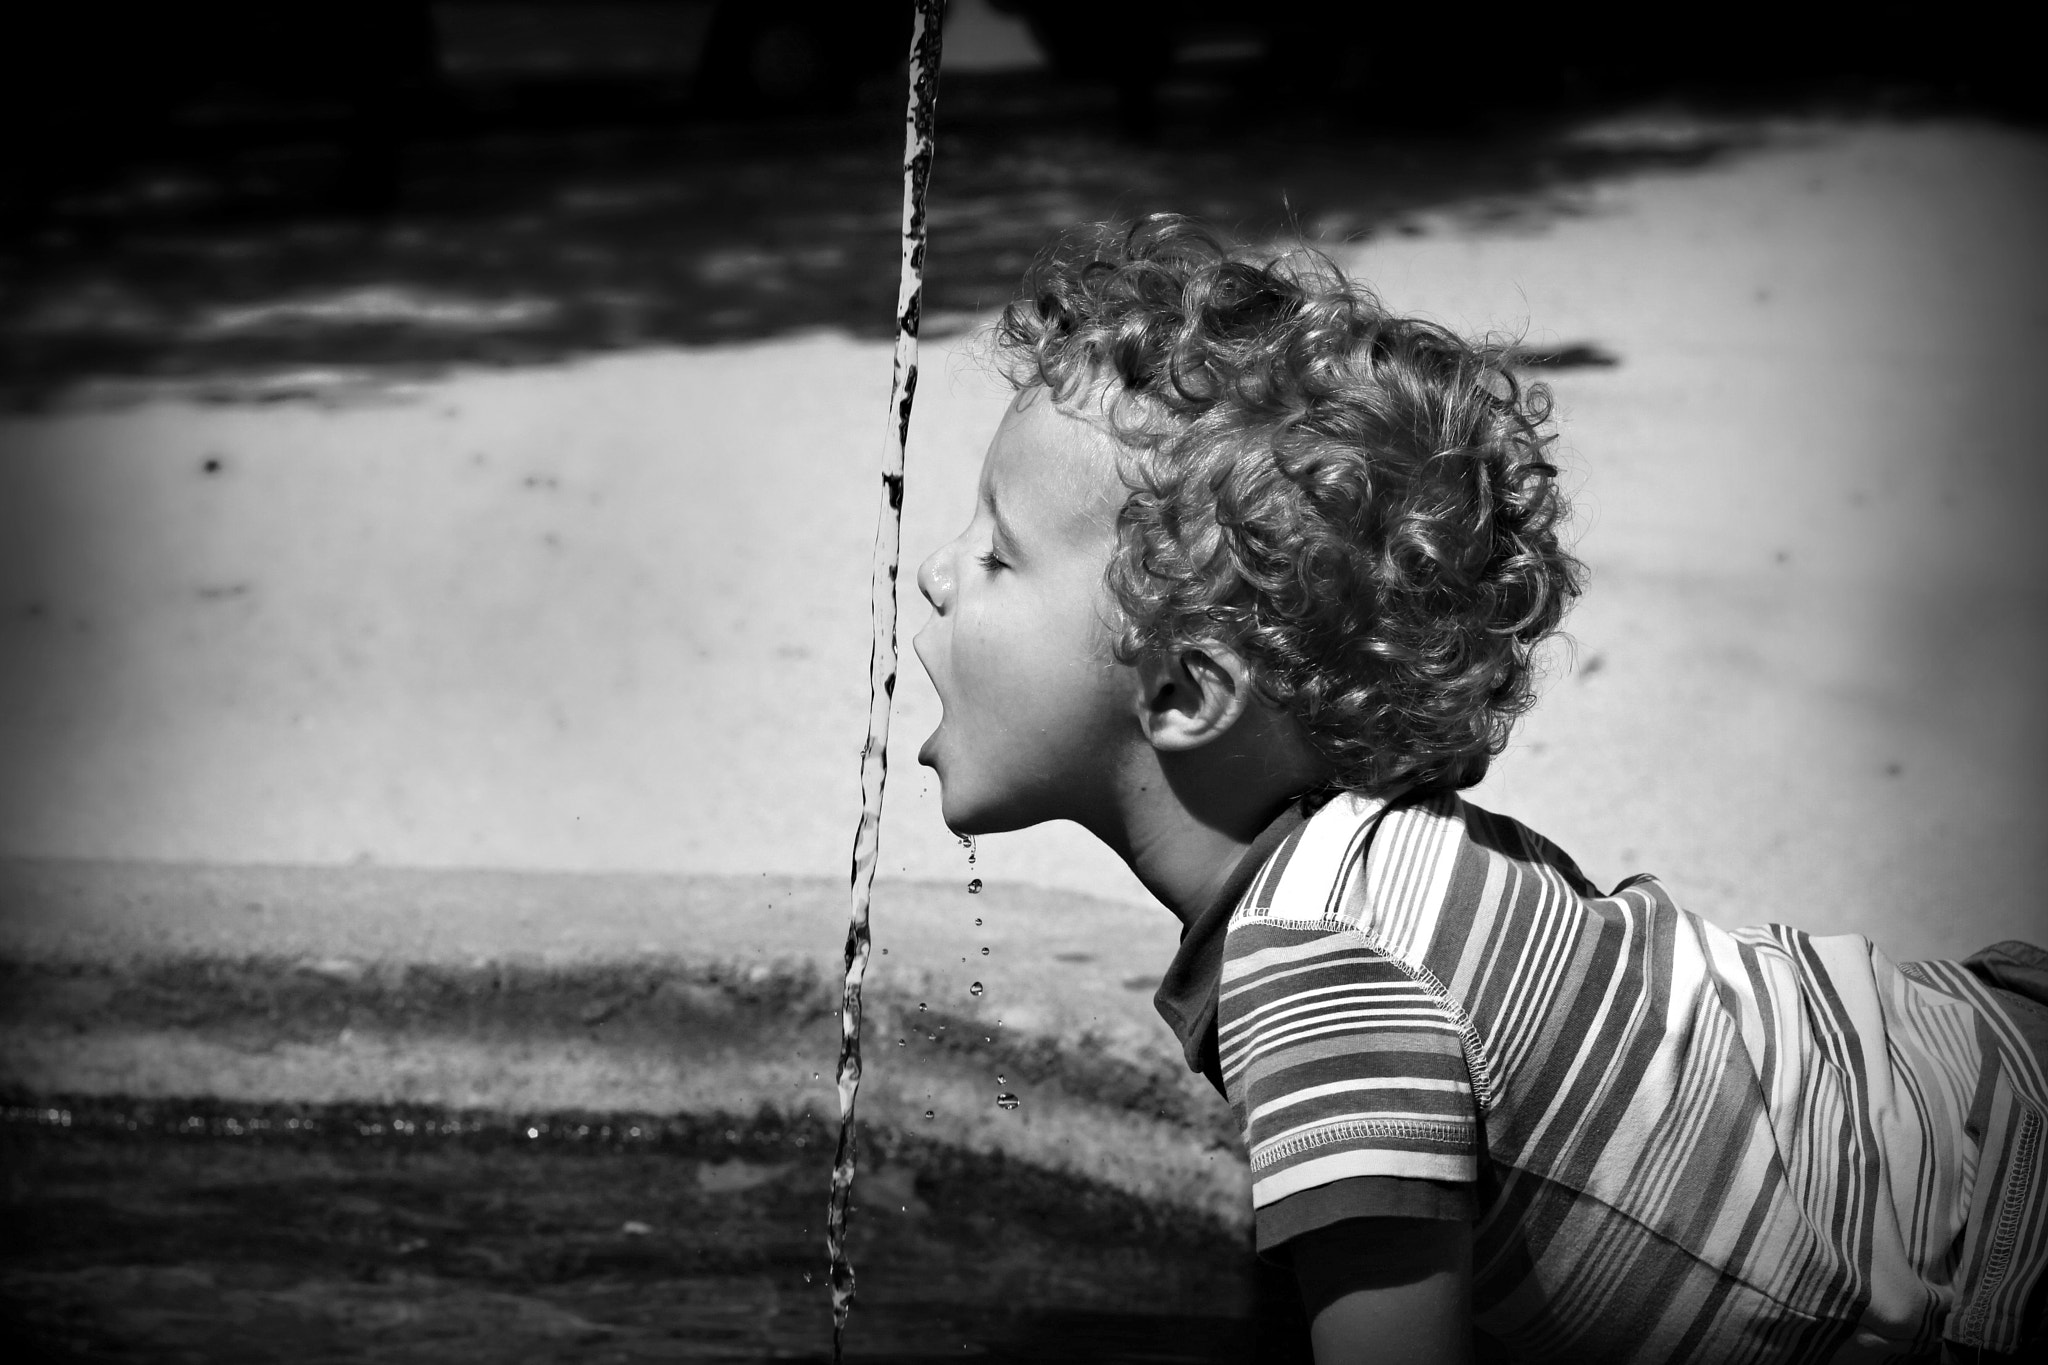 Photograph A small thirst by Sandrine Fernandes on 500px